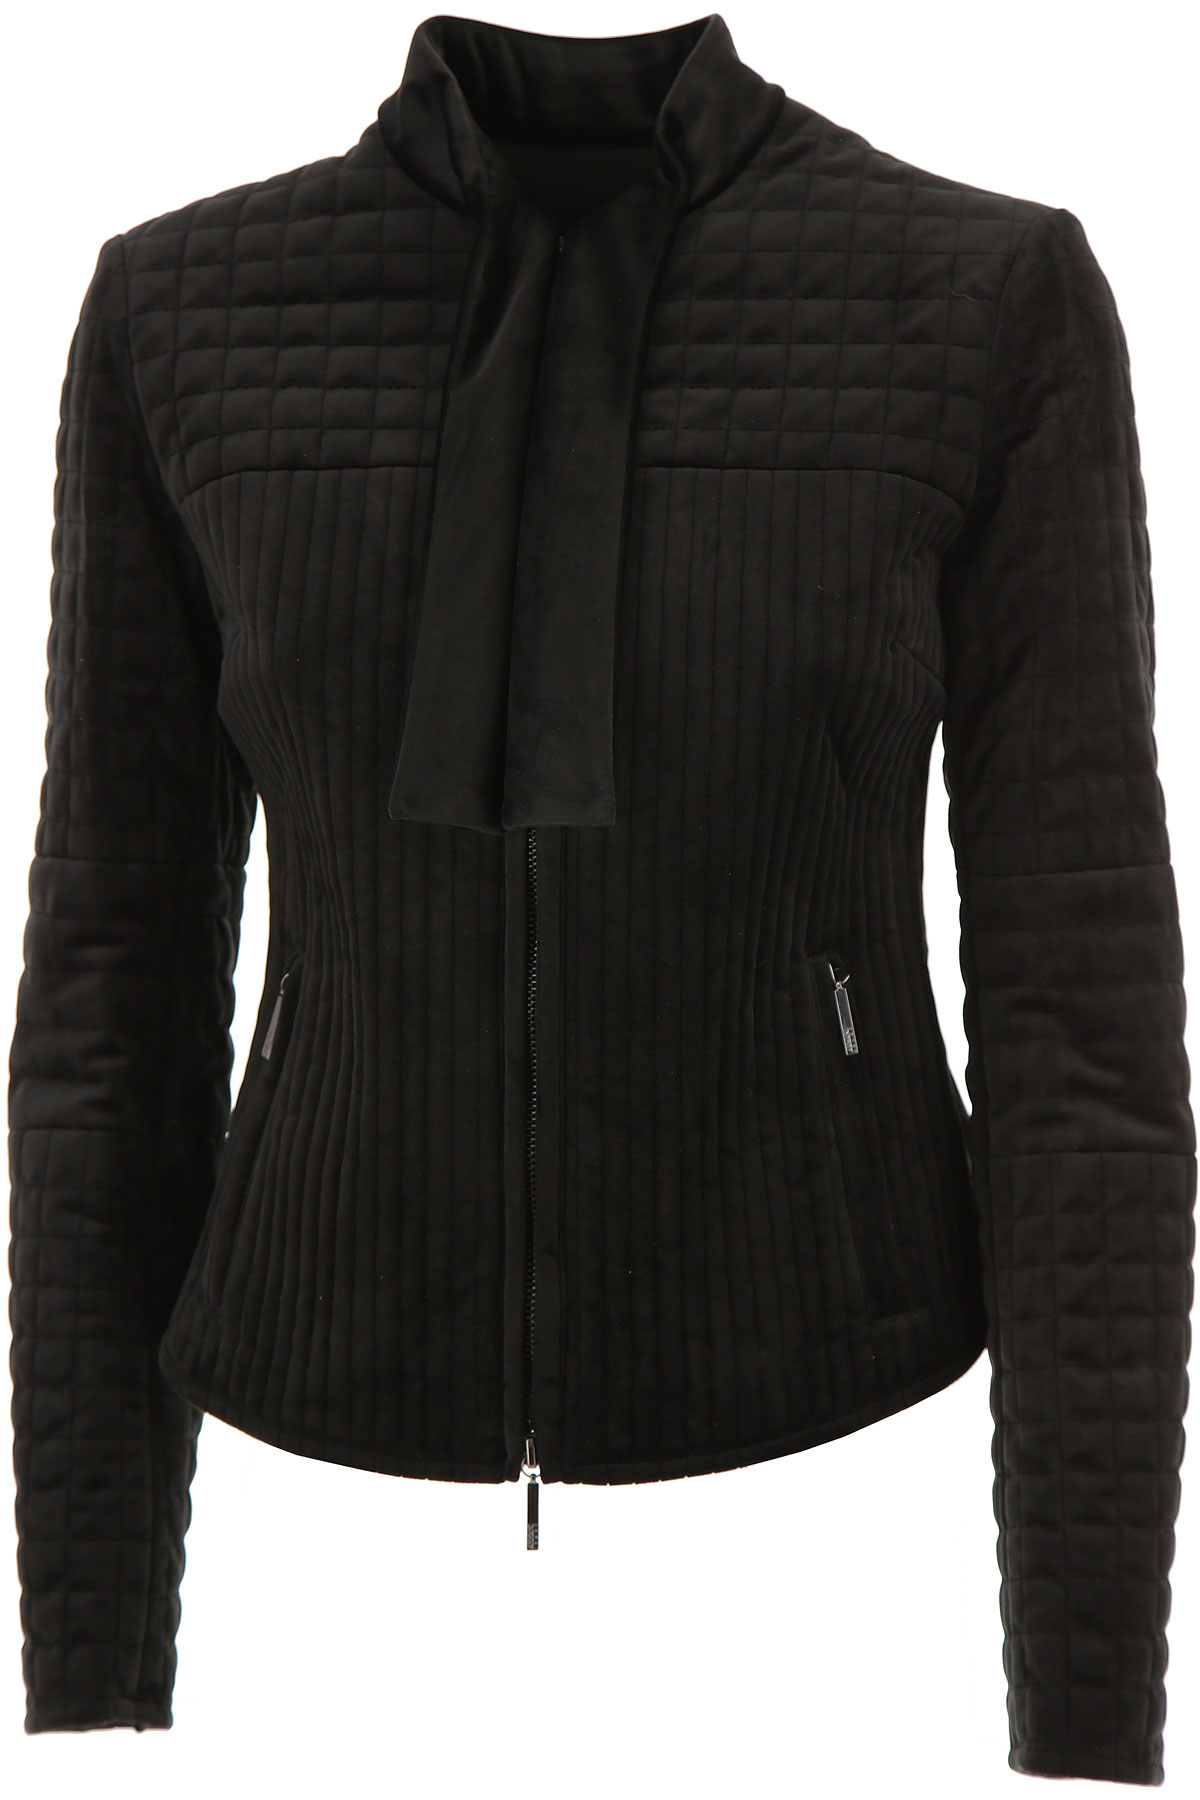 Image of Giorgio Armani Jacket for Women On Sale in Outlet, Black, polyester, 2017, 6